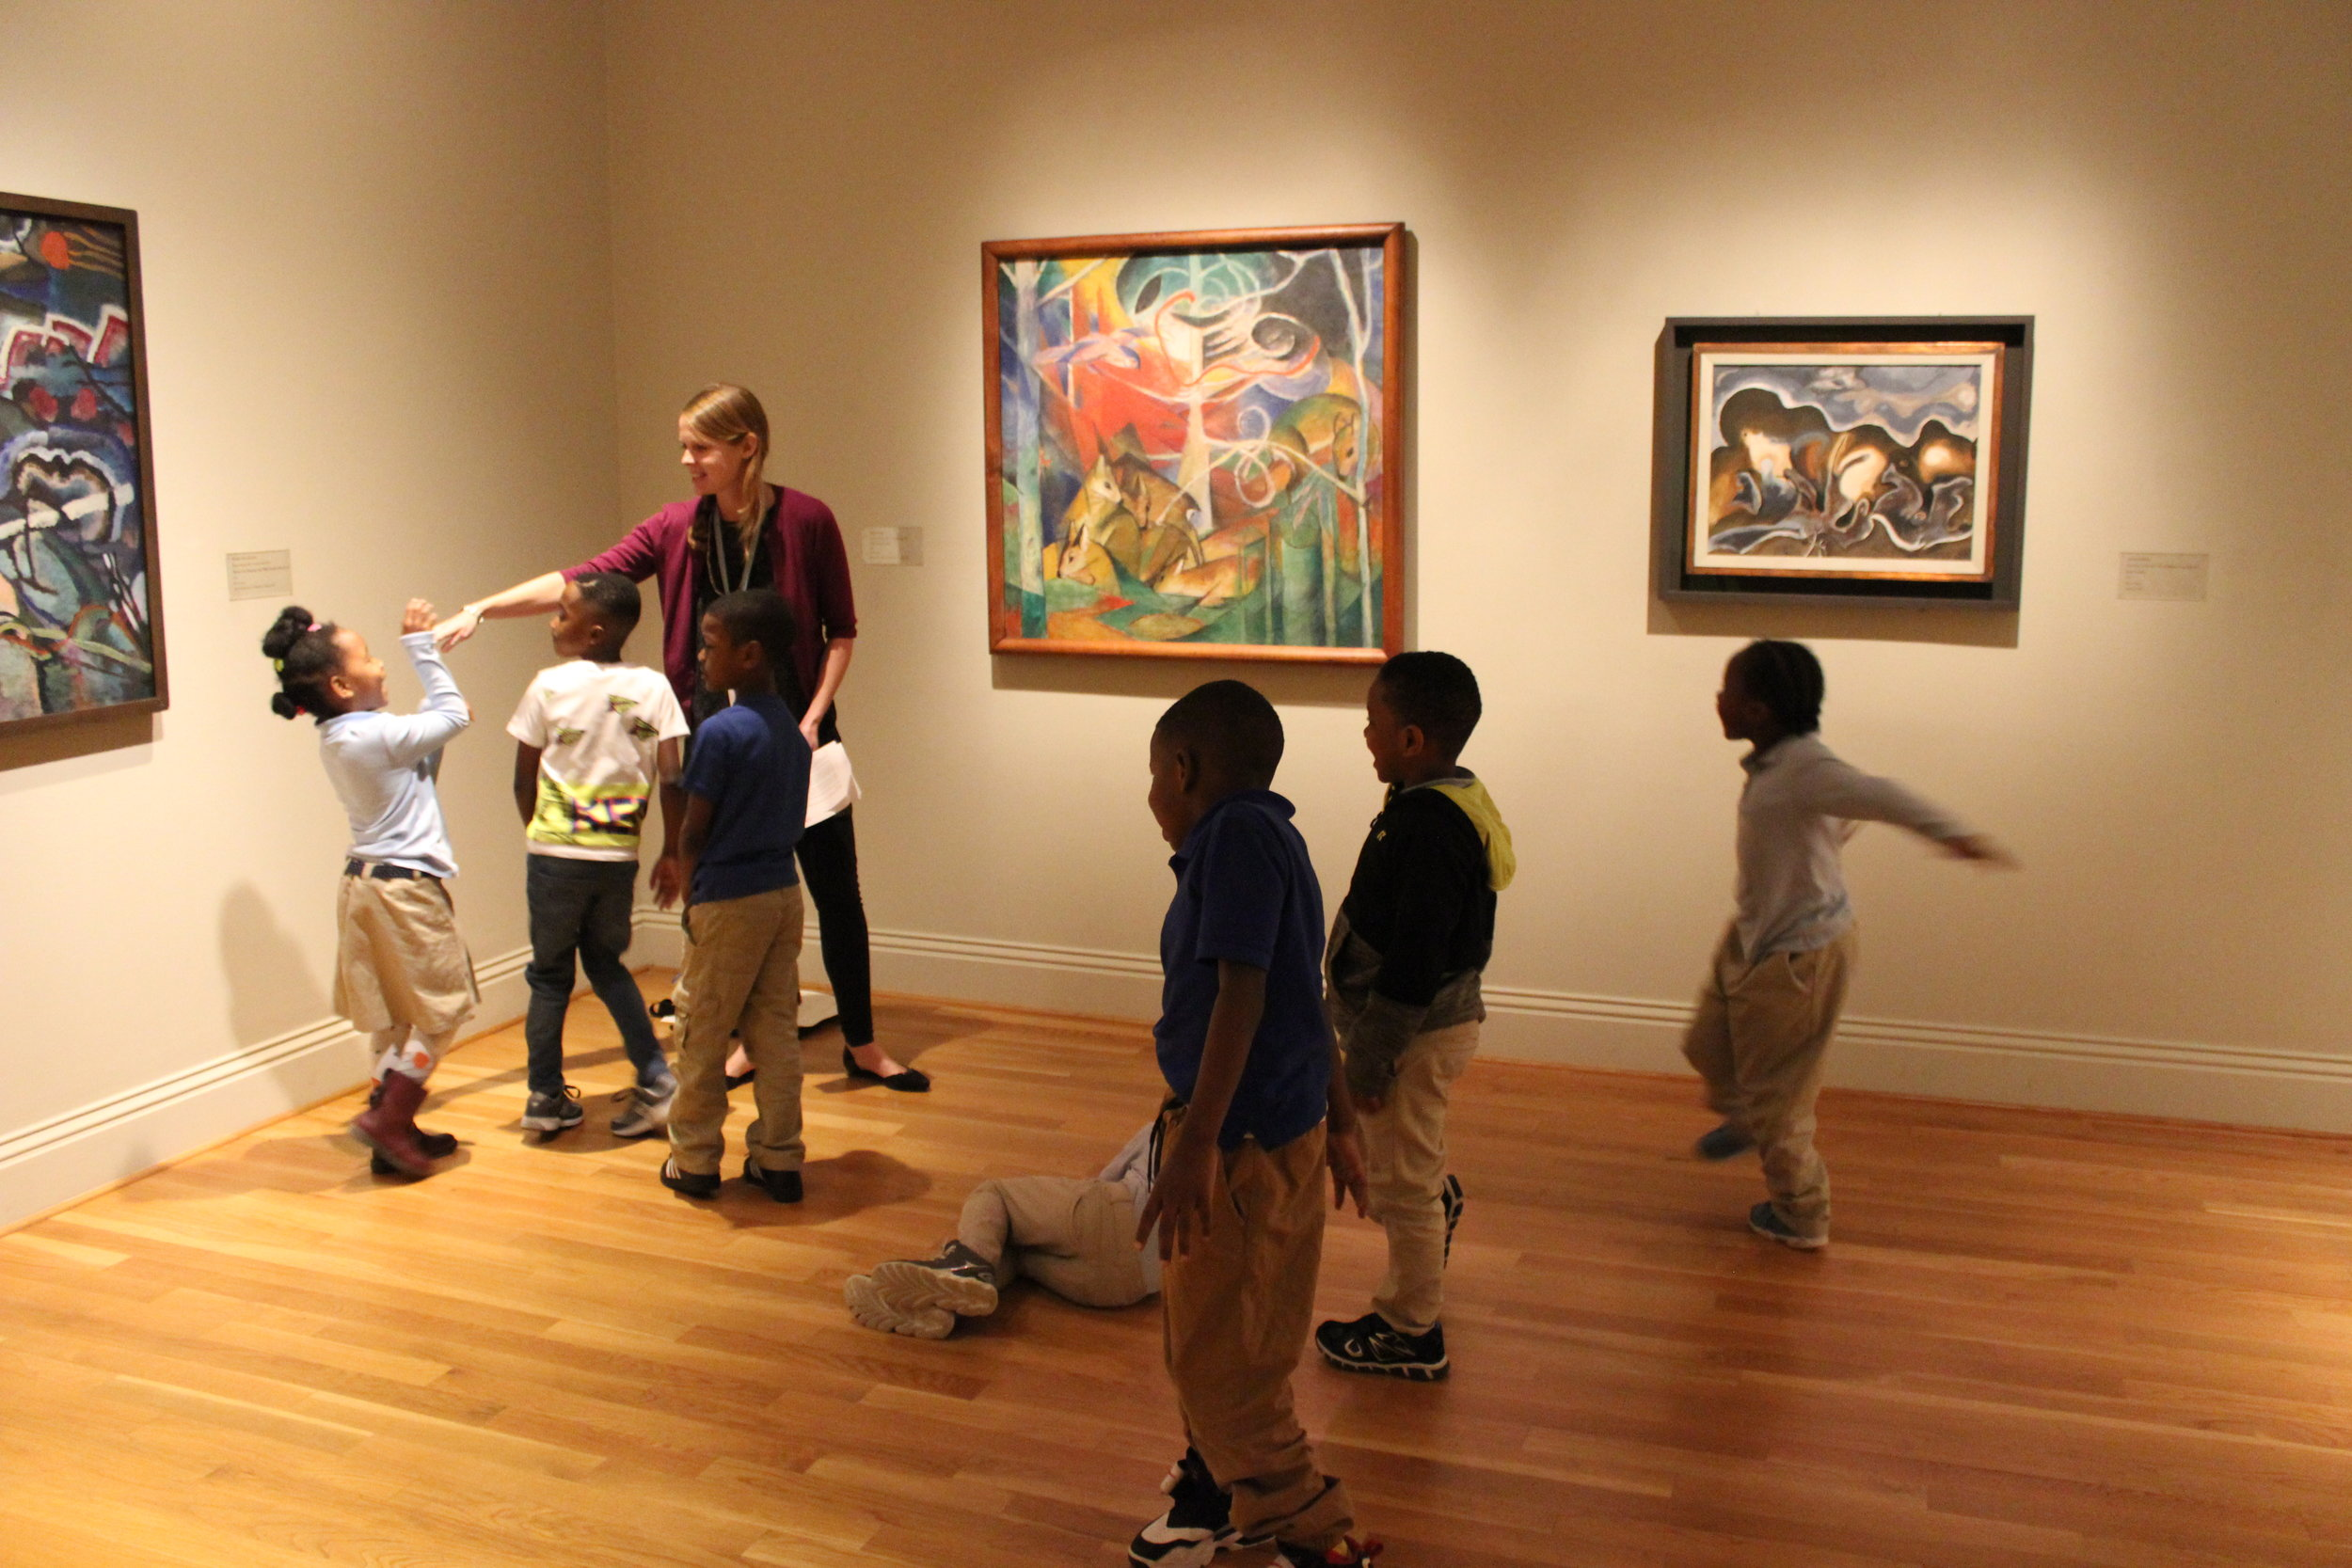 The Phillips Collection and Turner Elementary School, 2017 - 2018  Washington, DC Arts Integration Teaching Artist  I worked as an arts integration educator with 1st and 2nd grade students at Turner Elementary School. Students were asked to engage with art in a dynamic and meaningful way as they connected it to their classroom learning. I created the core-connected lessons and implemented them with the help of classroom teacher collaboration.  This is an image of students engaging with a kinetic art observation activity in the museum.